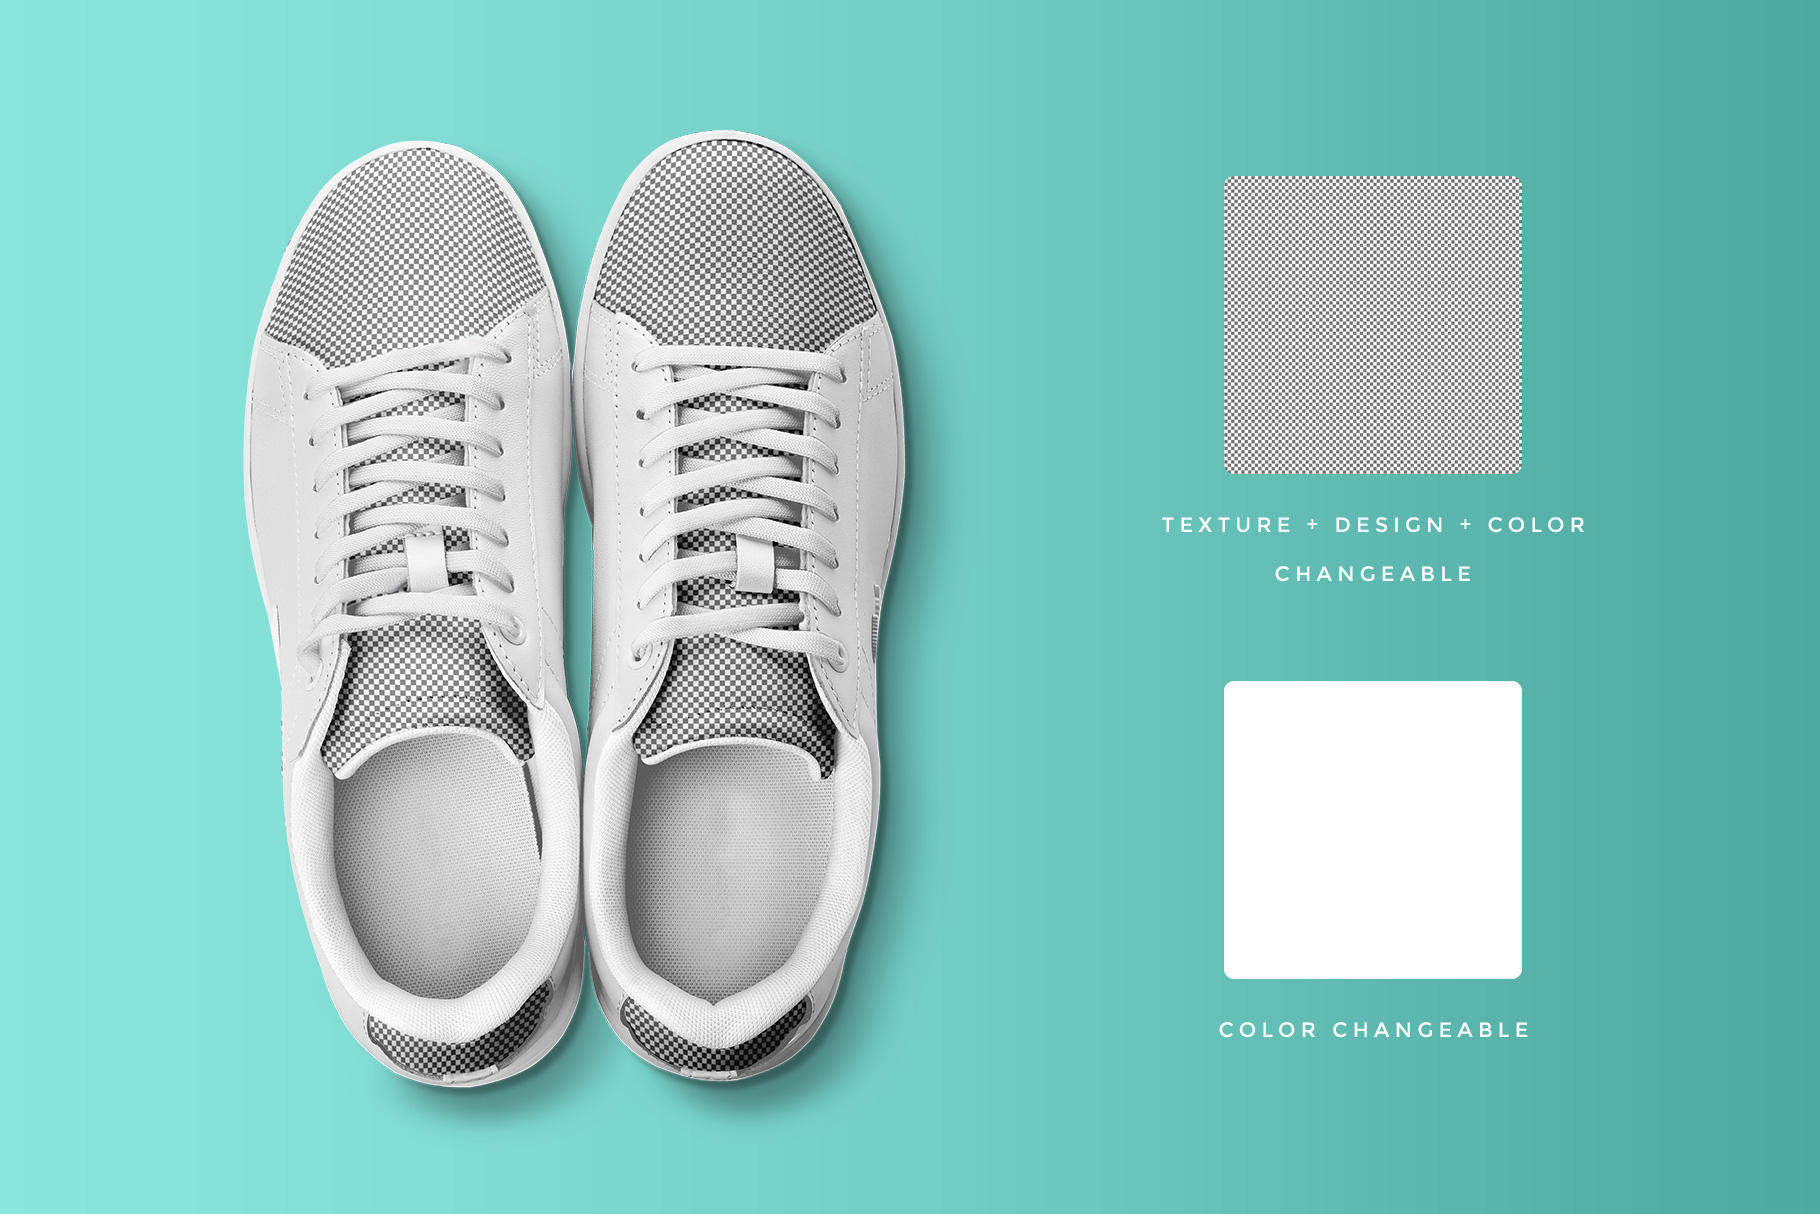 editability of the top view trendy sneakers mockup